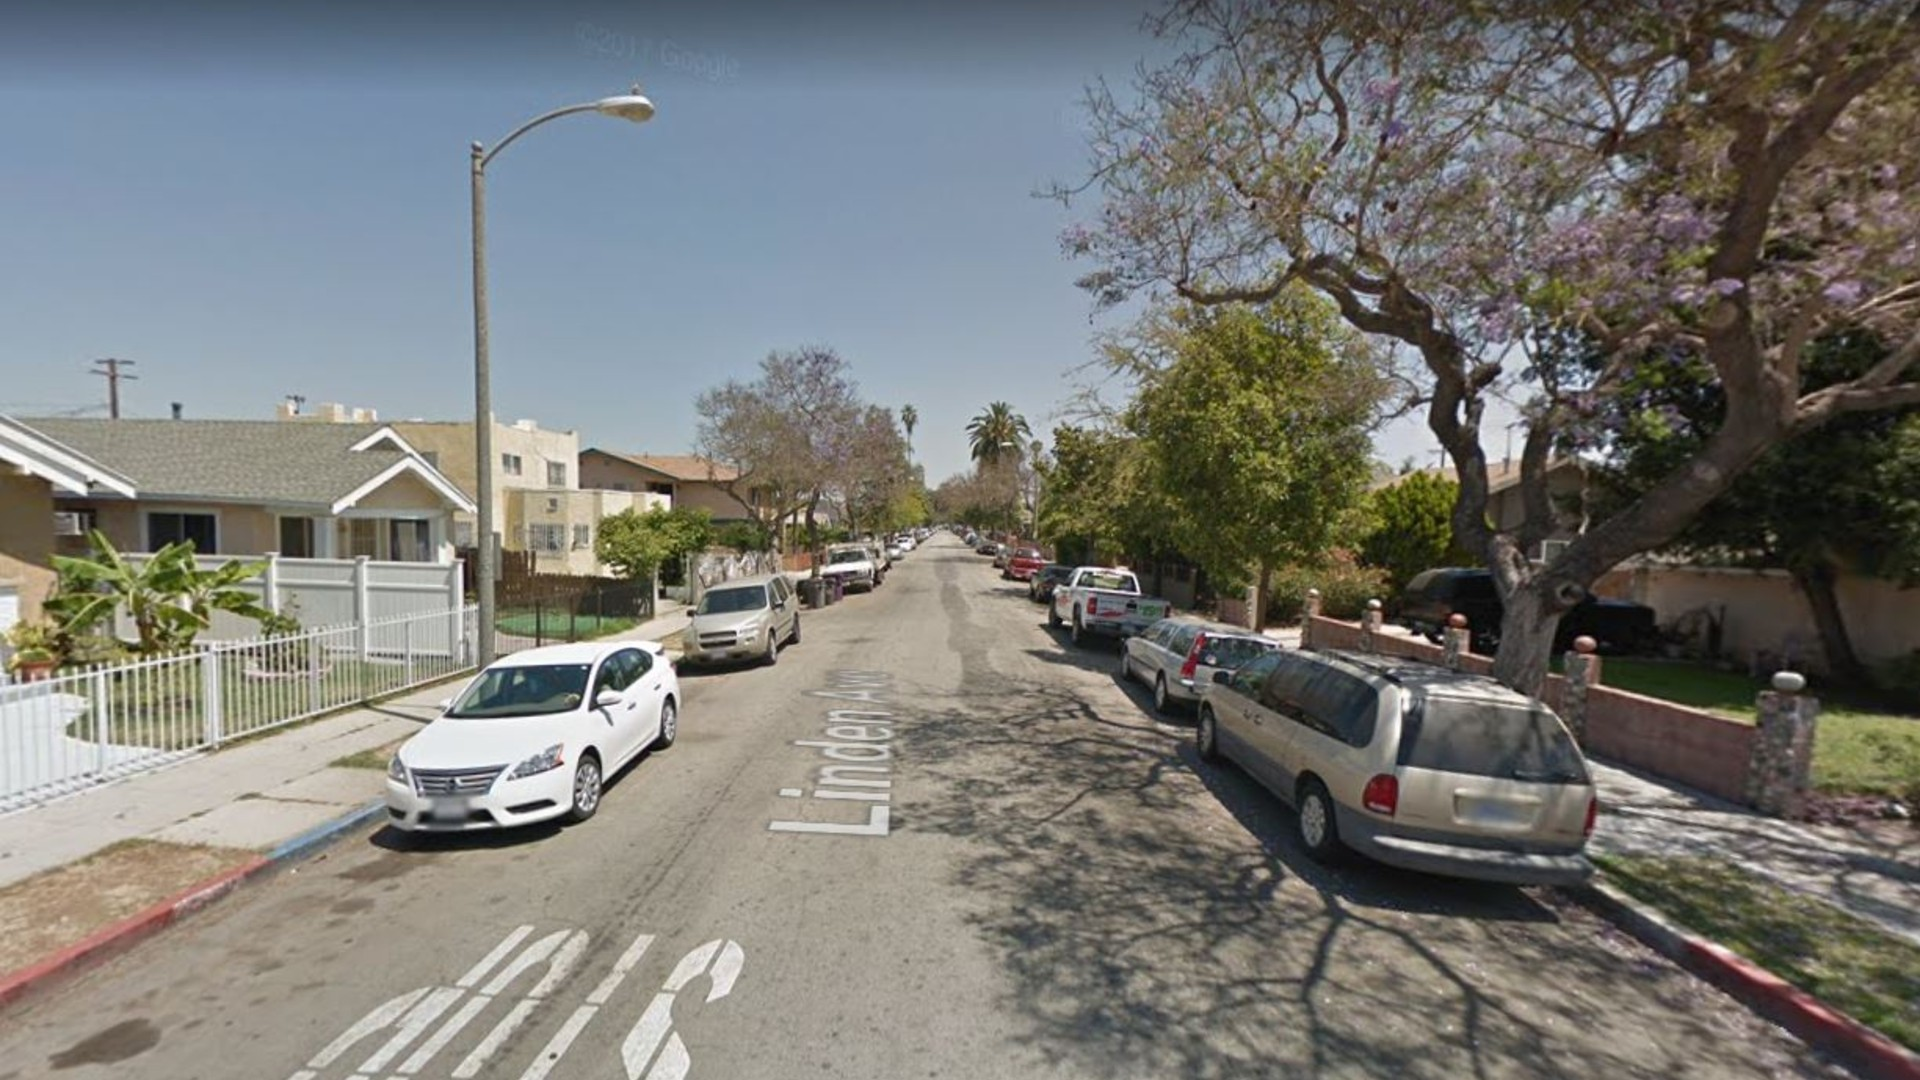 The 2000 block of Linden Avenue in Long Beach, as viewed in a Google Street View image.